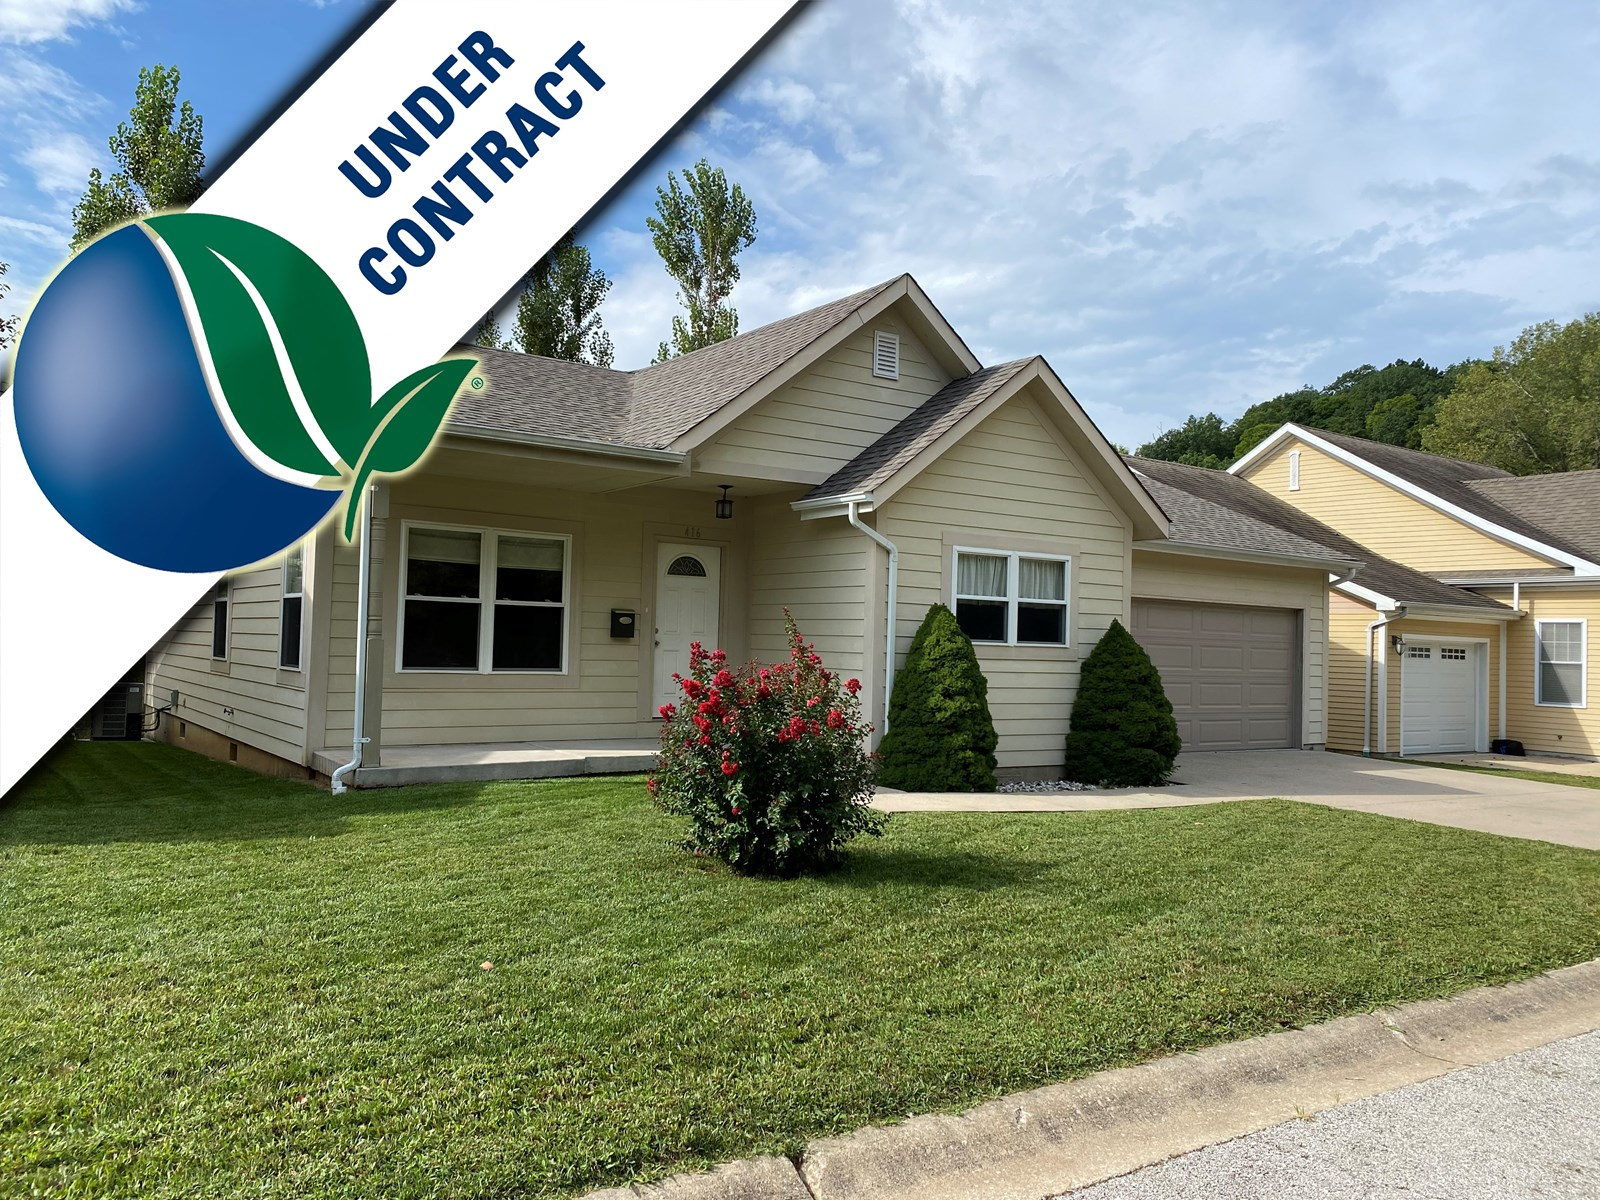 Charming 3 Bedroom Home For Sale in Hermann, MO!